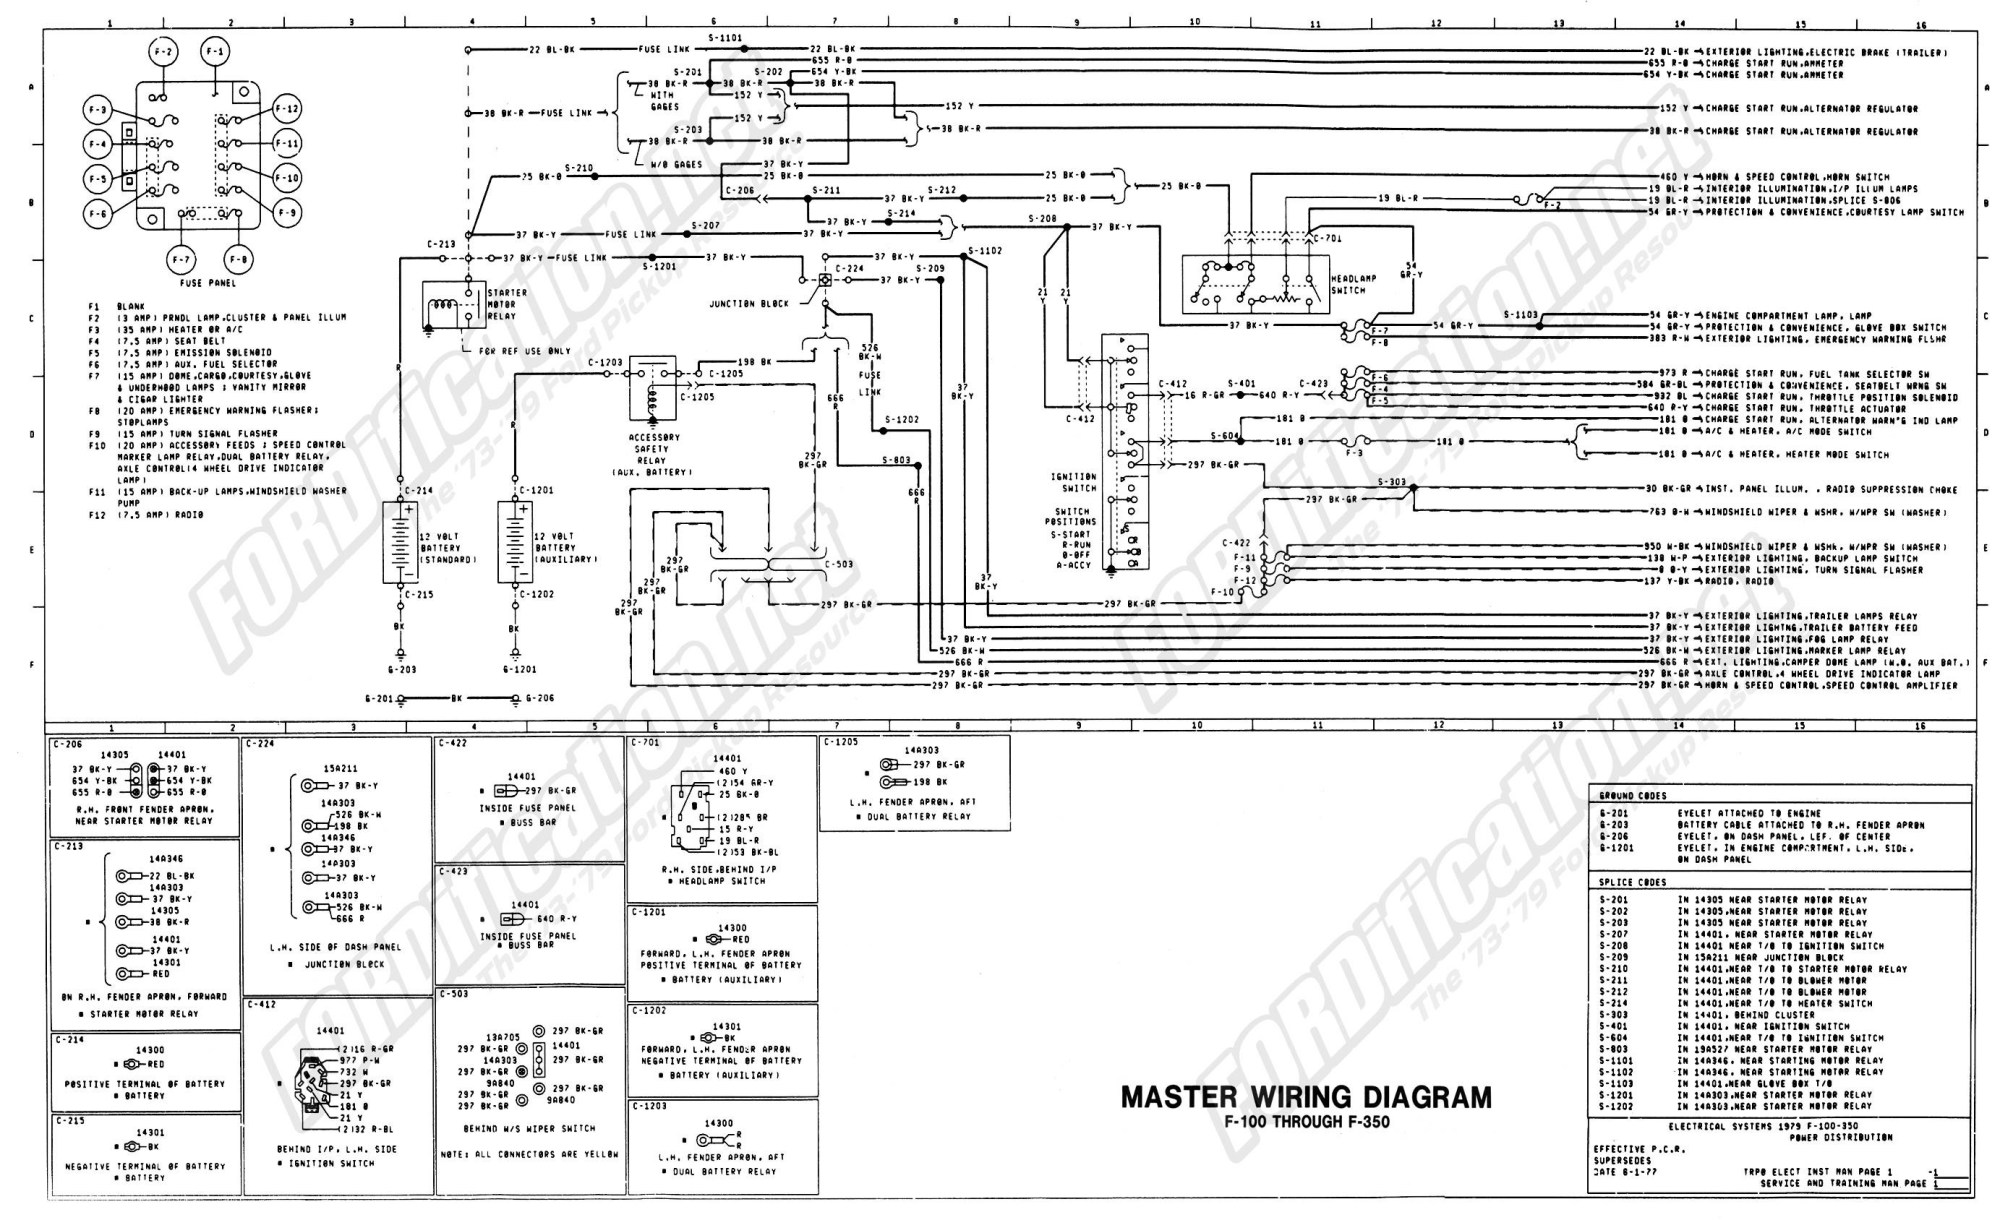 hight resolution of mack mr688s wiring diagram wiring diagram datasource1999 mack mr688s fuse diagram wiring diagram toolbox 1999 mack